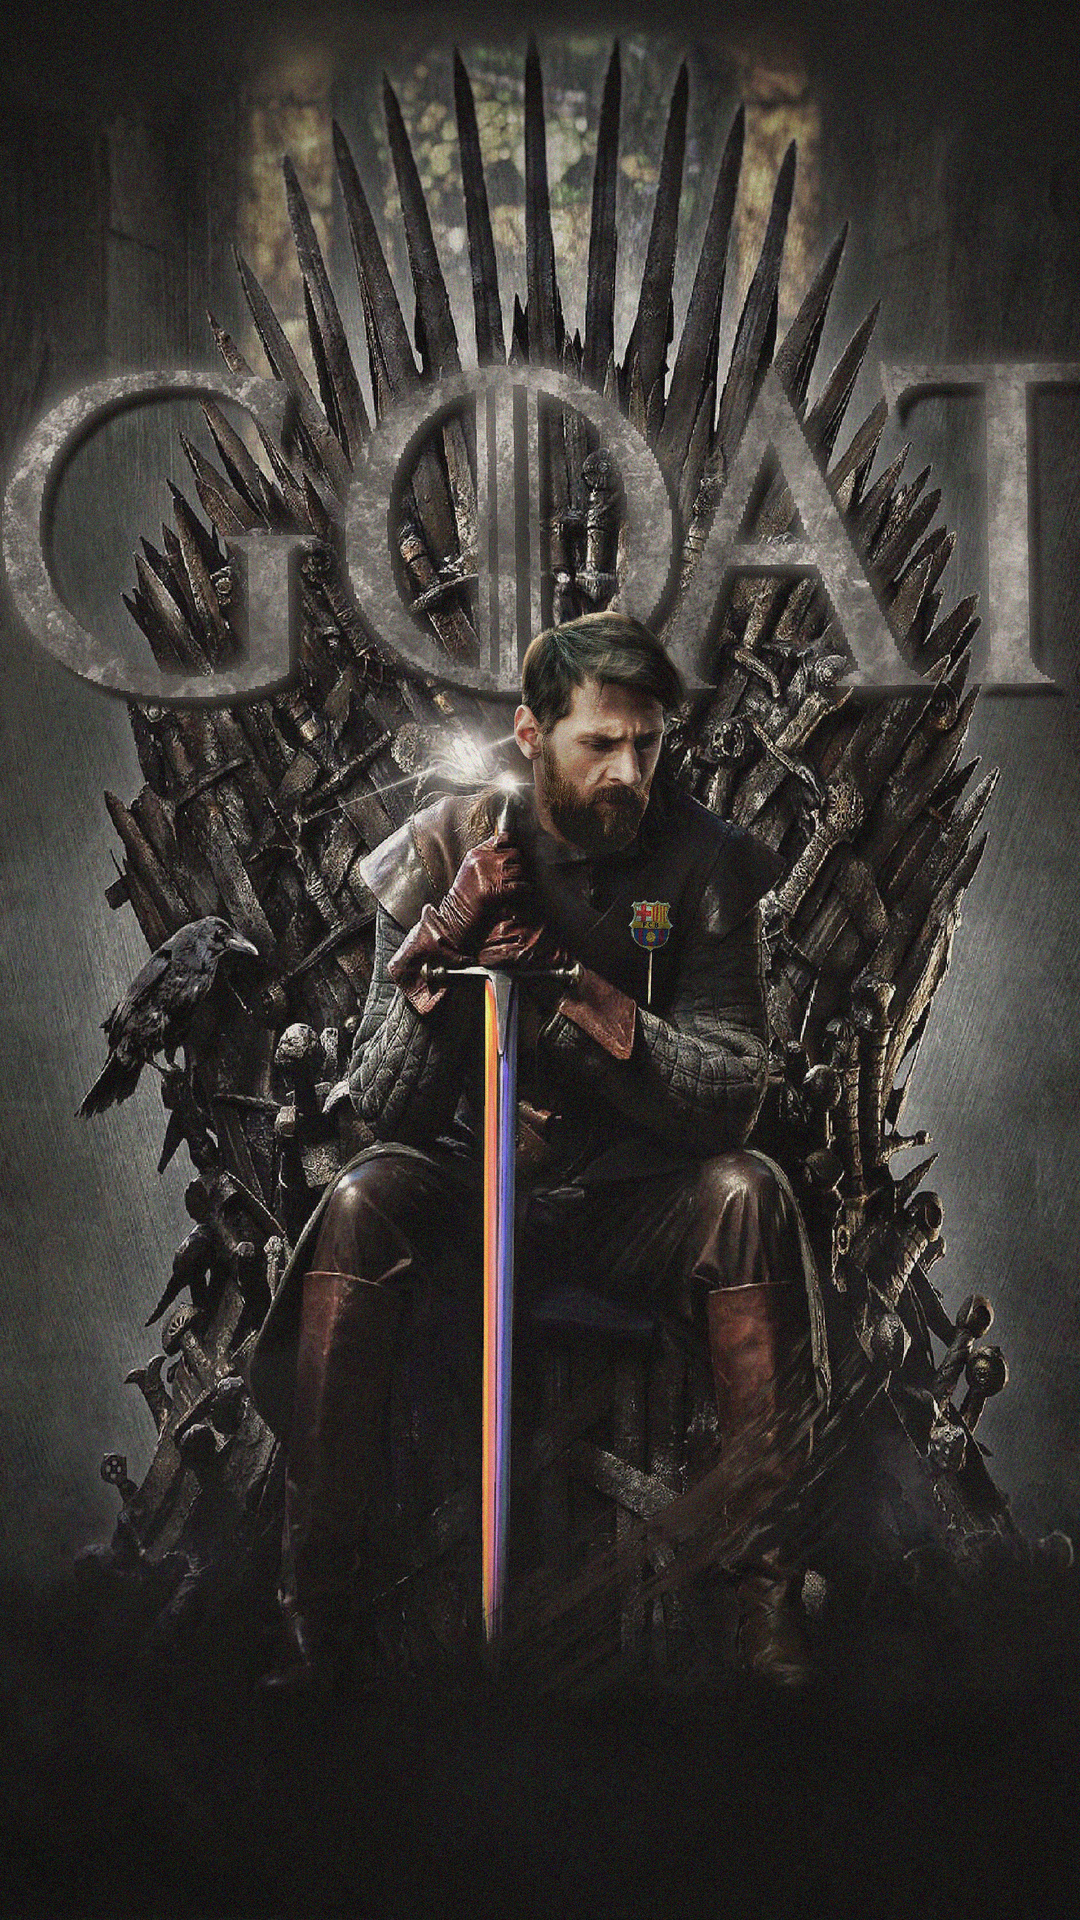 messi-game-of-thrones-xe.jpg